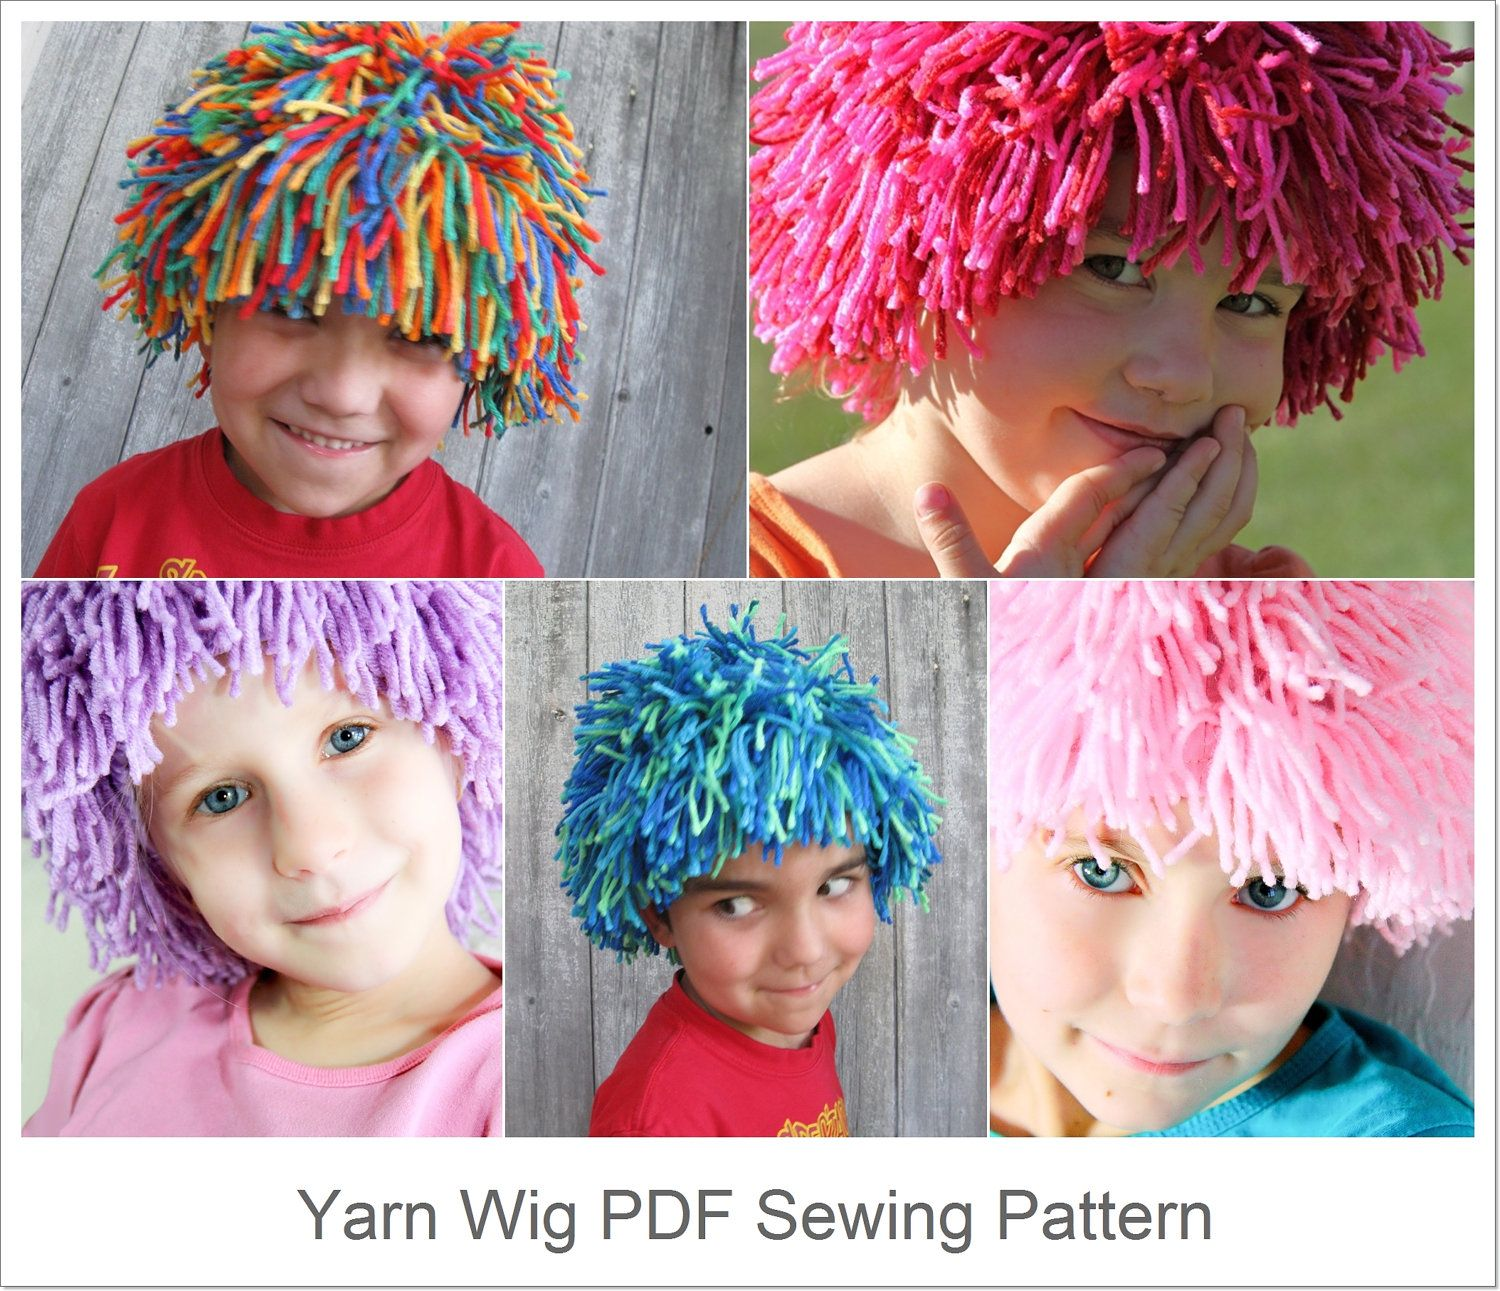 Diy Yarn Wig Sewing Pattern Halloween Costume Wig Tutorial Pdf E Pattern For Children And Adult 5 75 Vi Yarn Wig Yarn Diy Halloween Costume Wigs